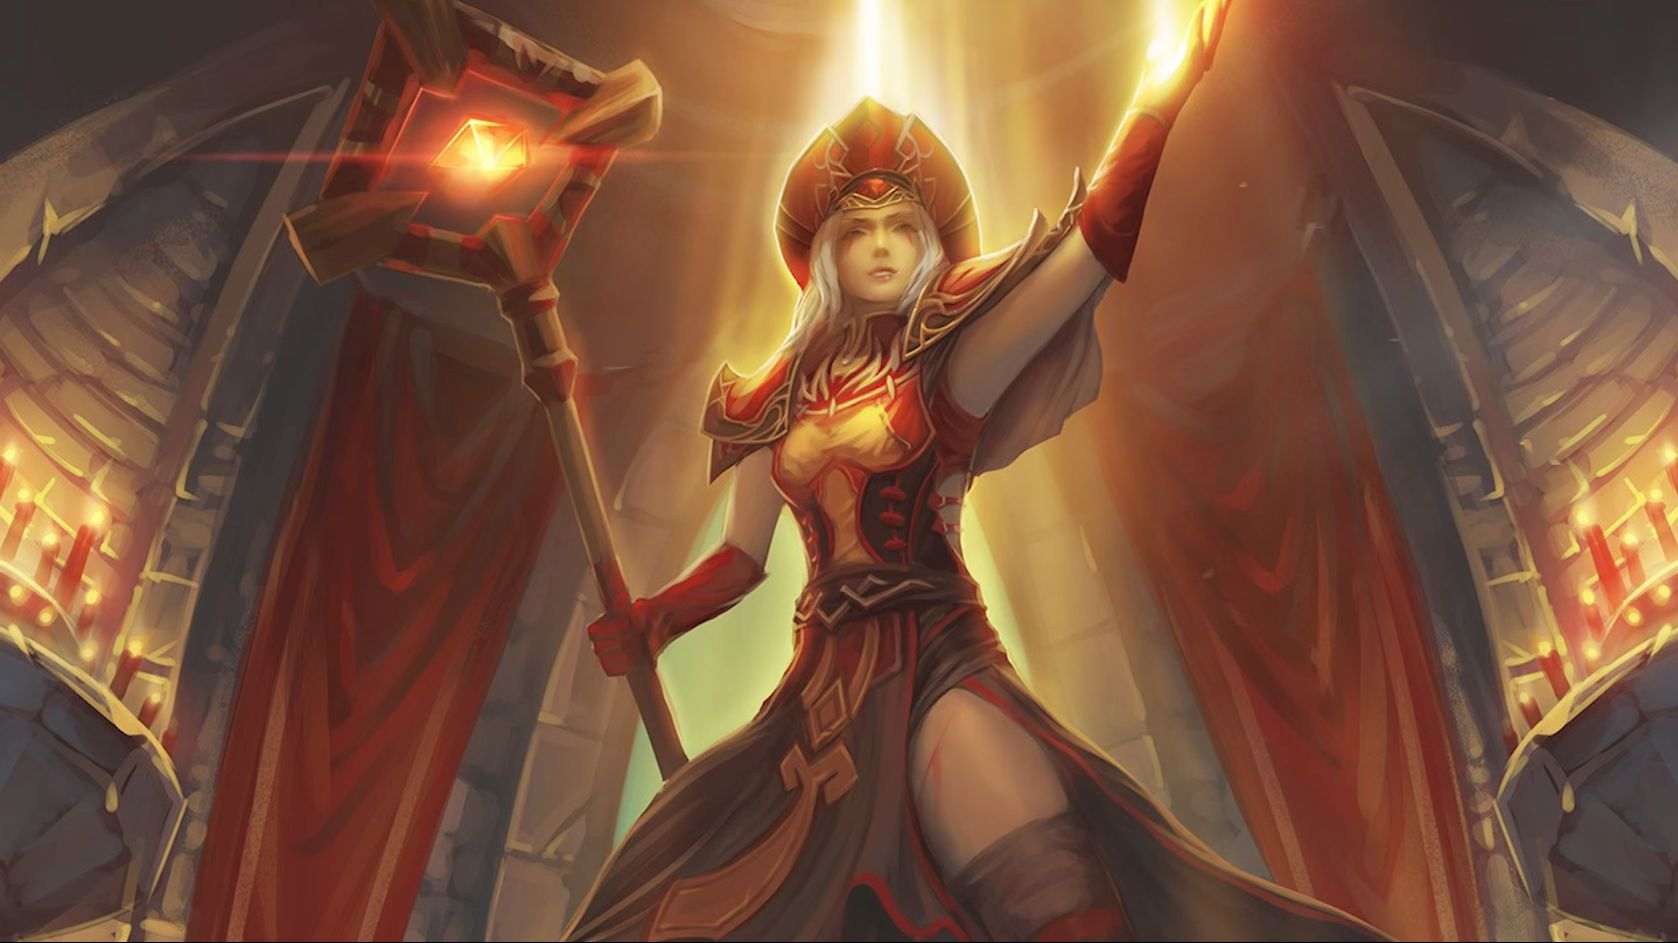 HotS Whitemane Full Artwork 2